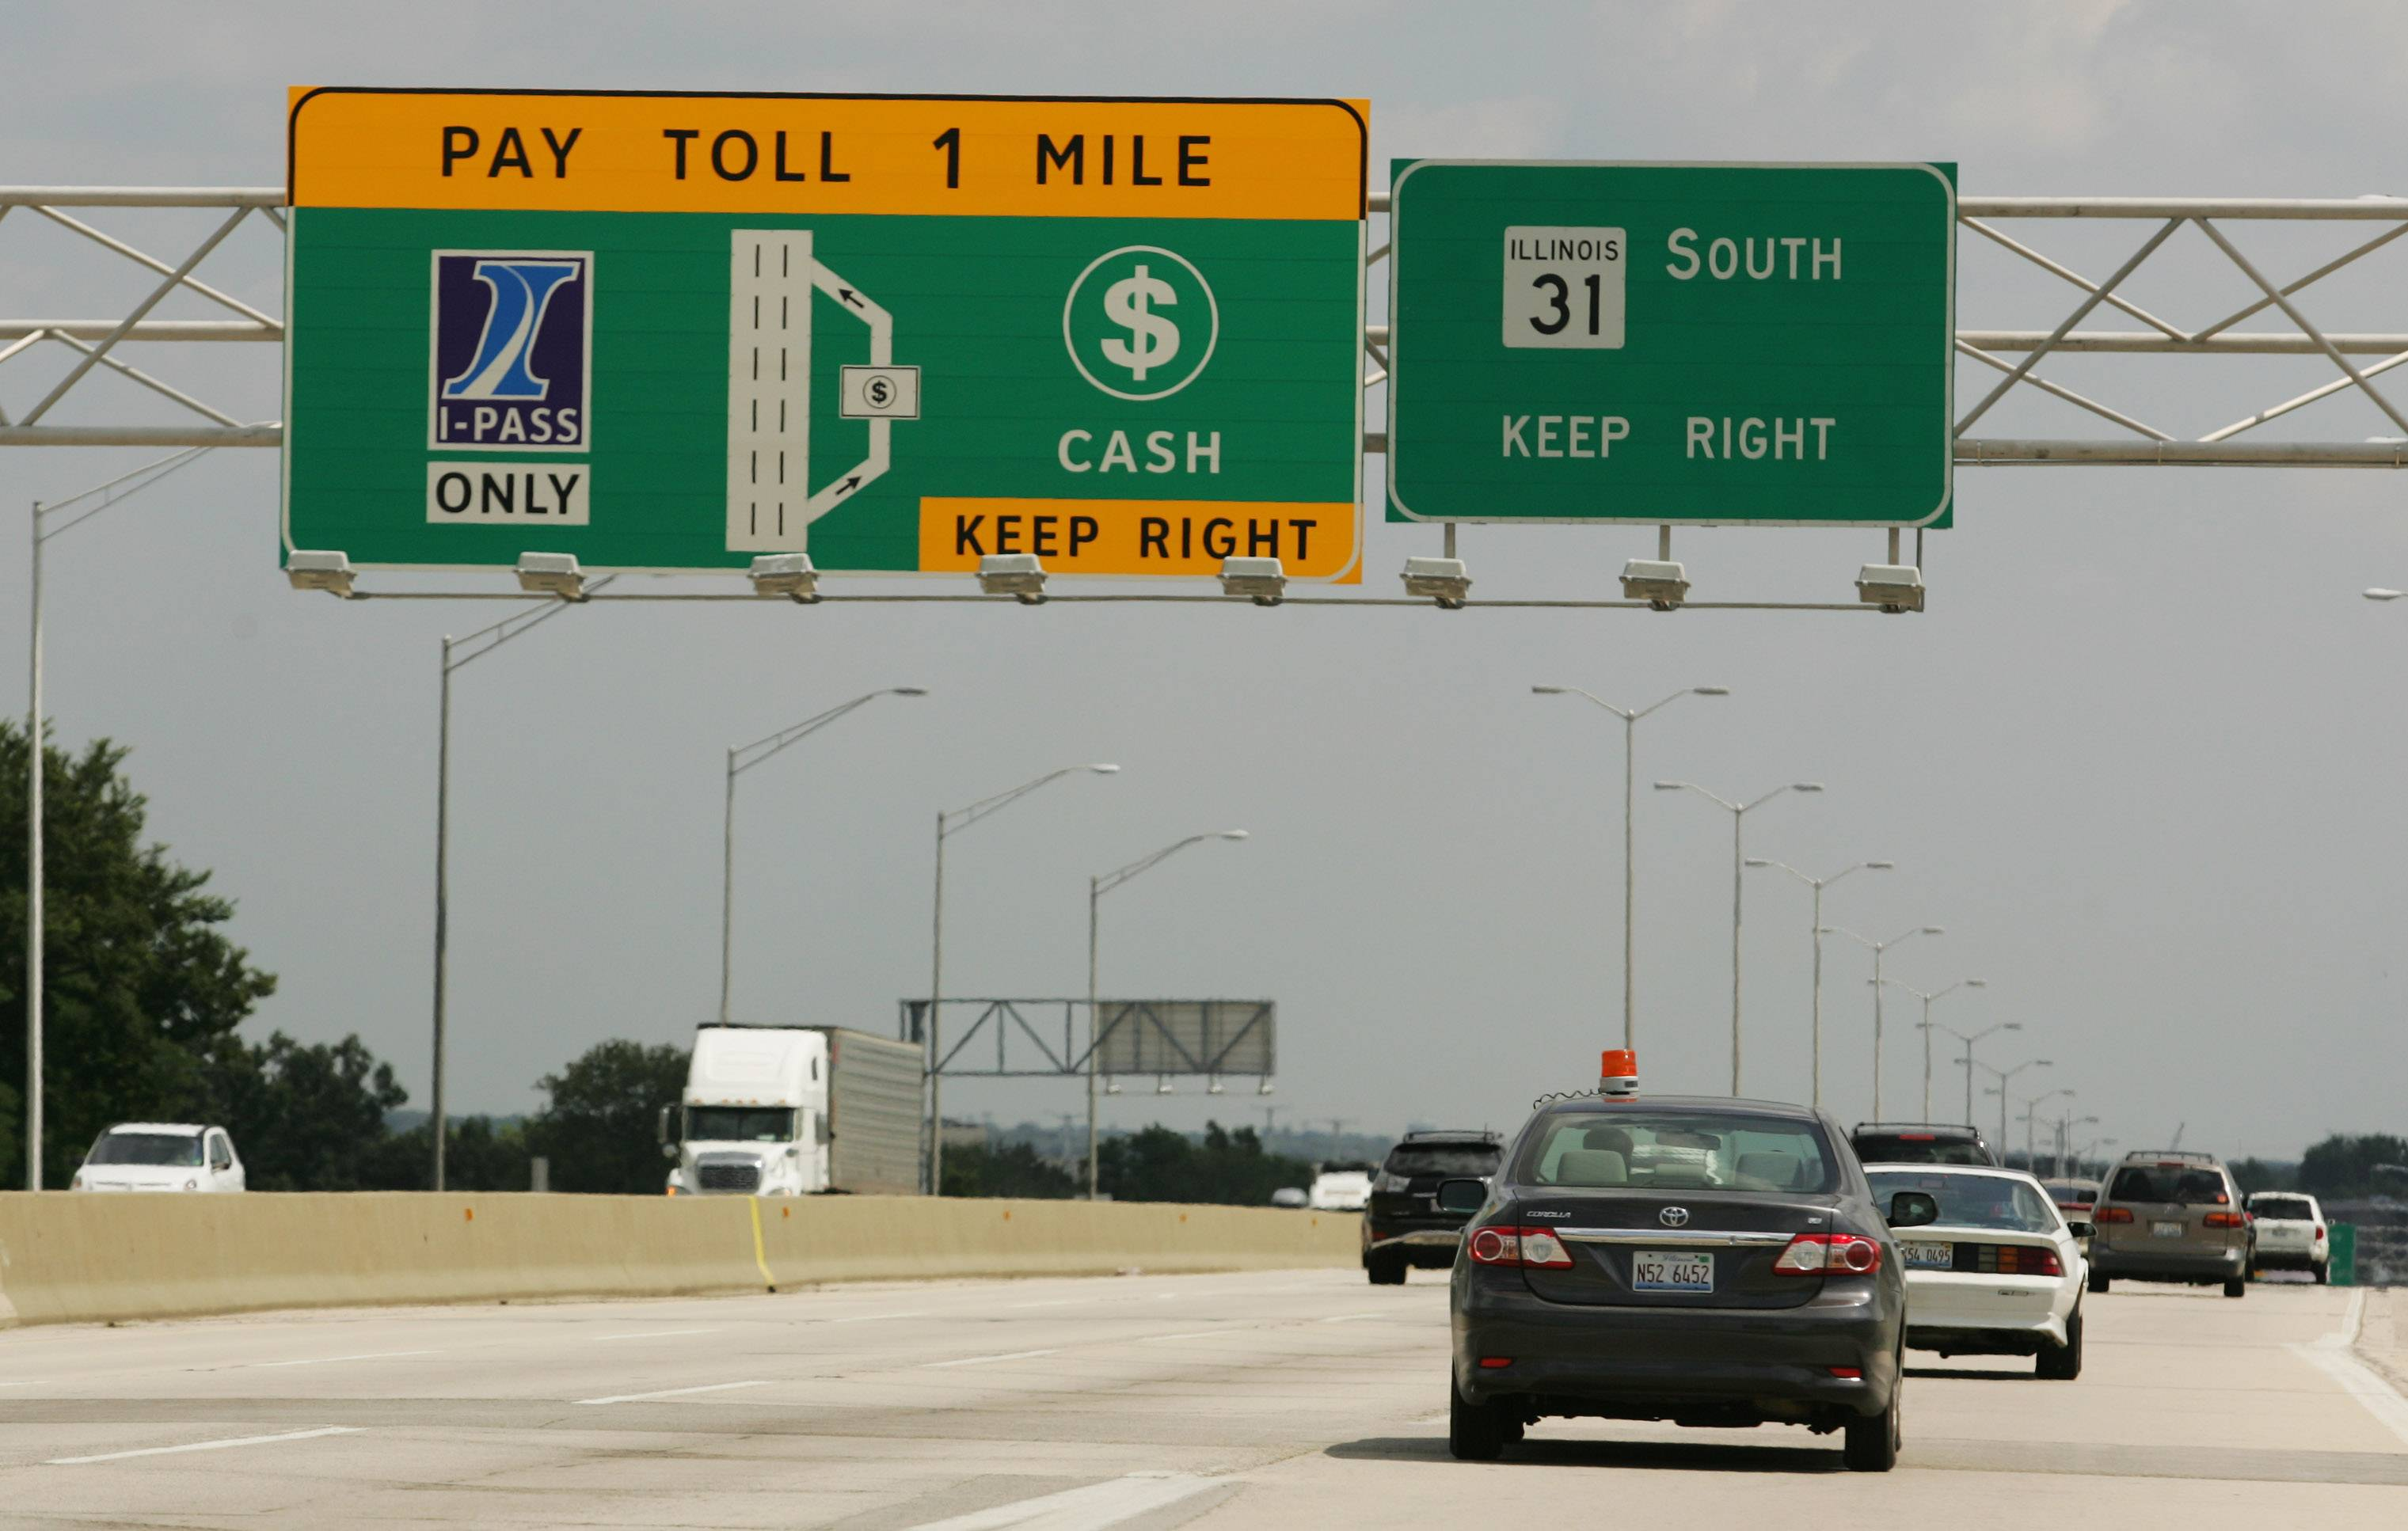 The tollway's website upgrade is causing intermittent outages for customers trying to access I-PASS accounts and information.